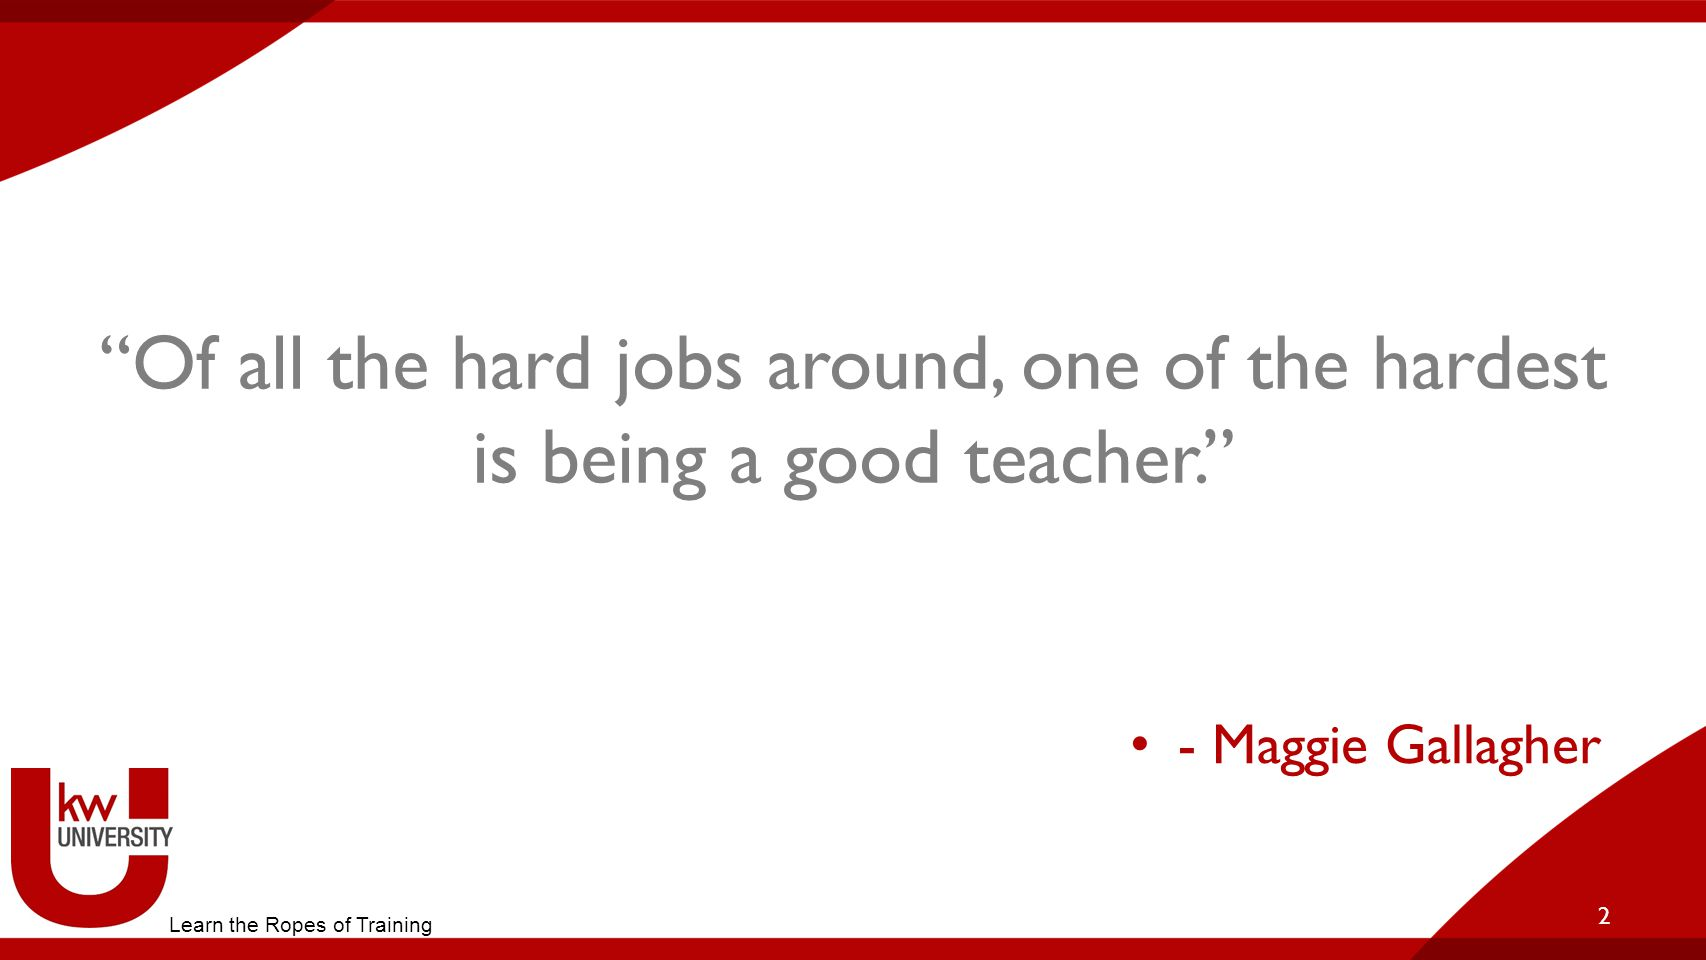 Title of Breakout Of all the hard jobs around, one of the hardest is being a good teacher. KWFR15.